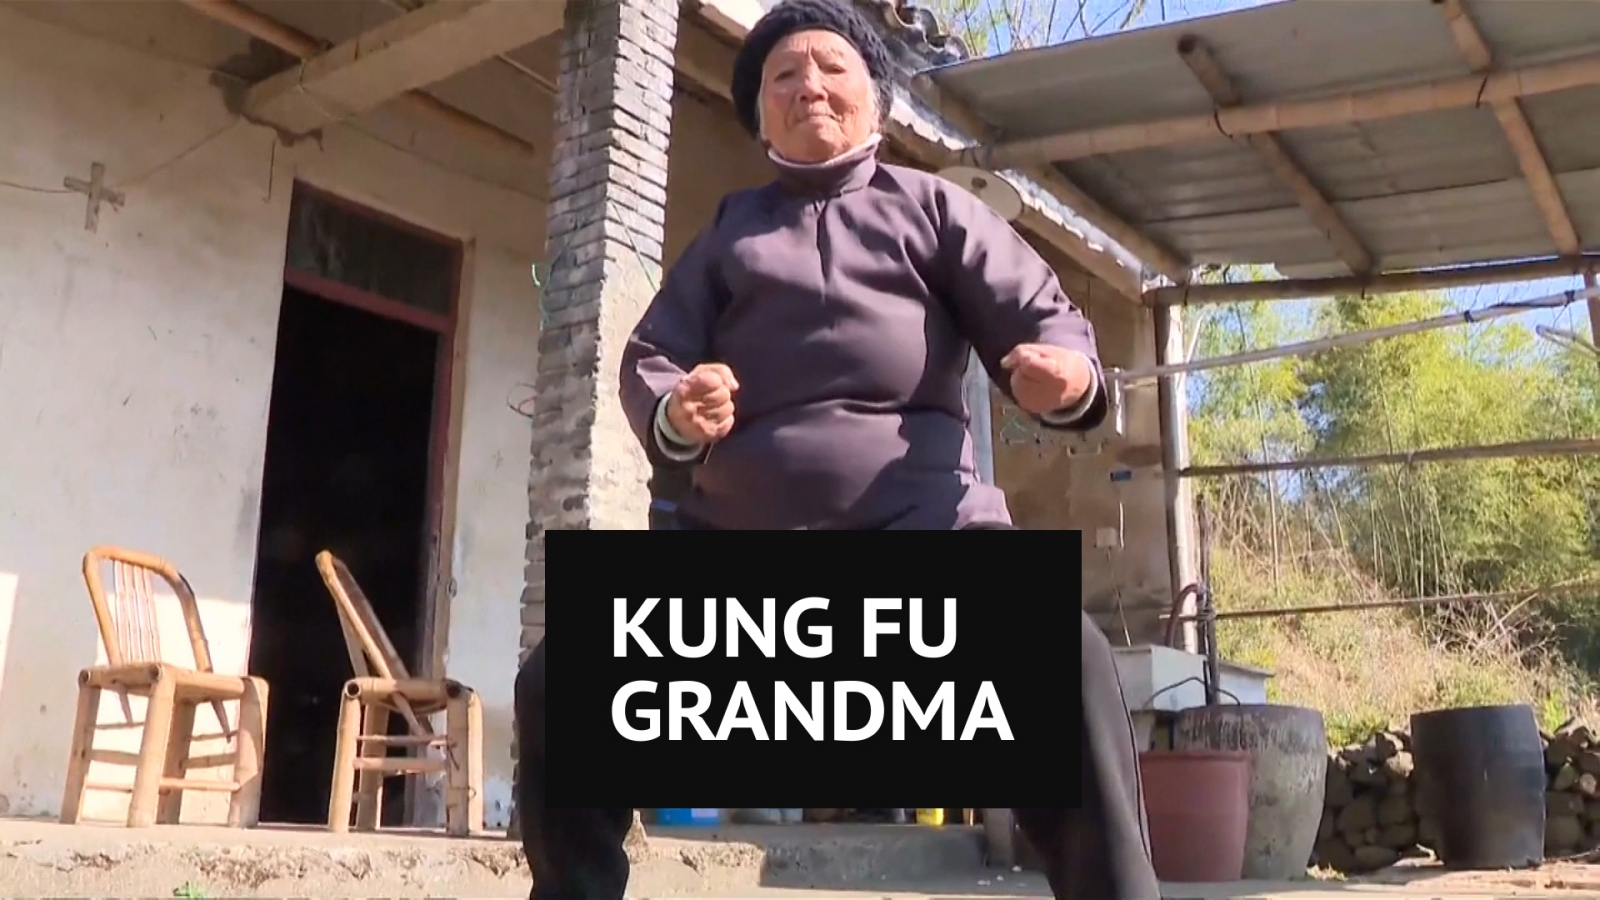 Meet Zhang Hexian, the 94-year-old Kung Fu Grandma